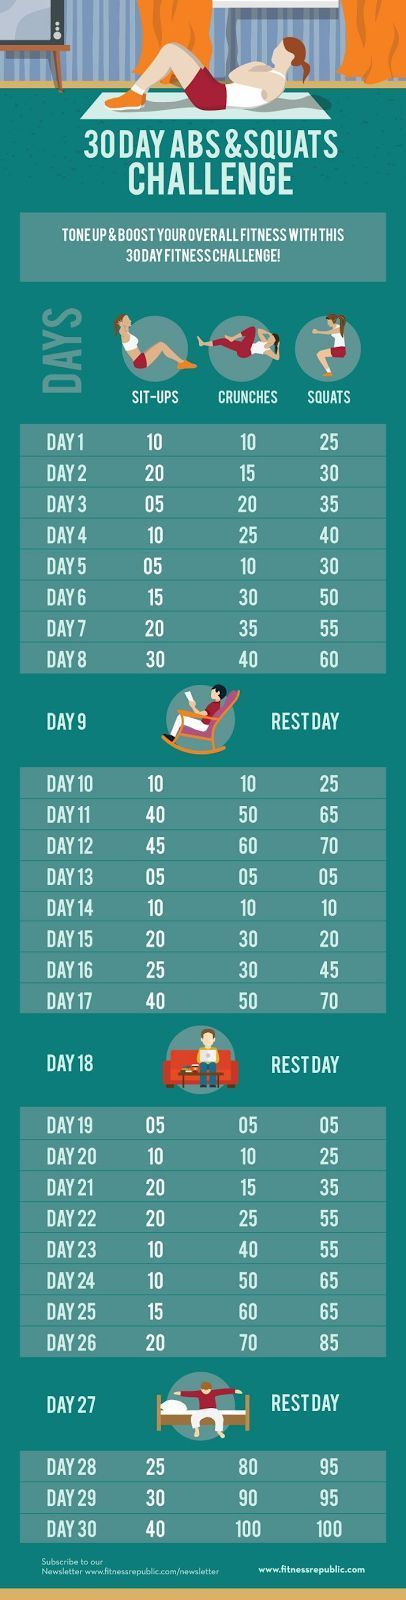 Exercises 7 Day Muffin Top Challenge 5 great home workout that you can do per week that can help get that muffin top to disappear. Let's go!5 great home workout that you can do per week that can help get that muffin top to disappear. Let's go!